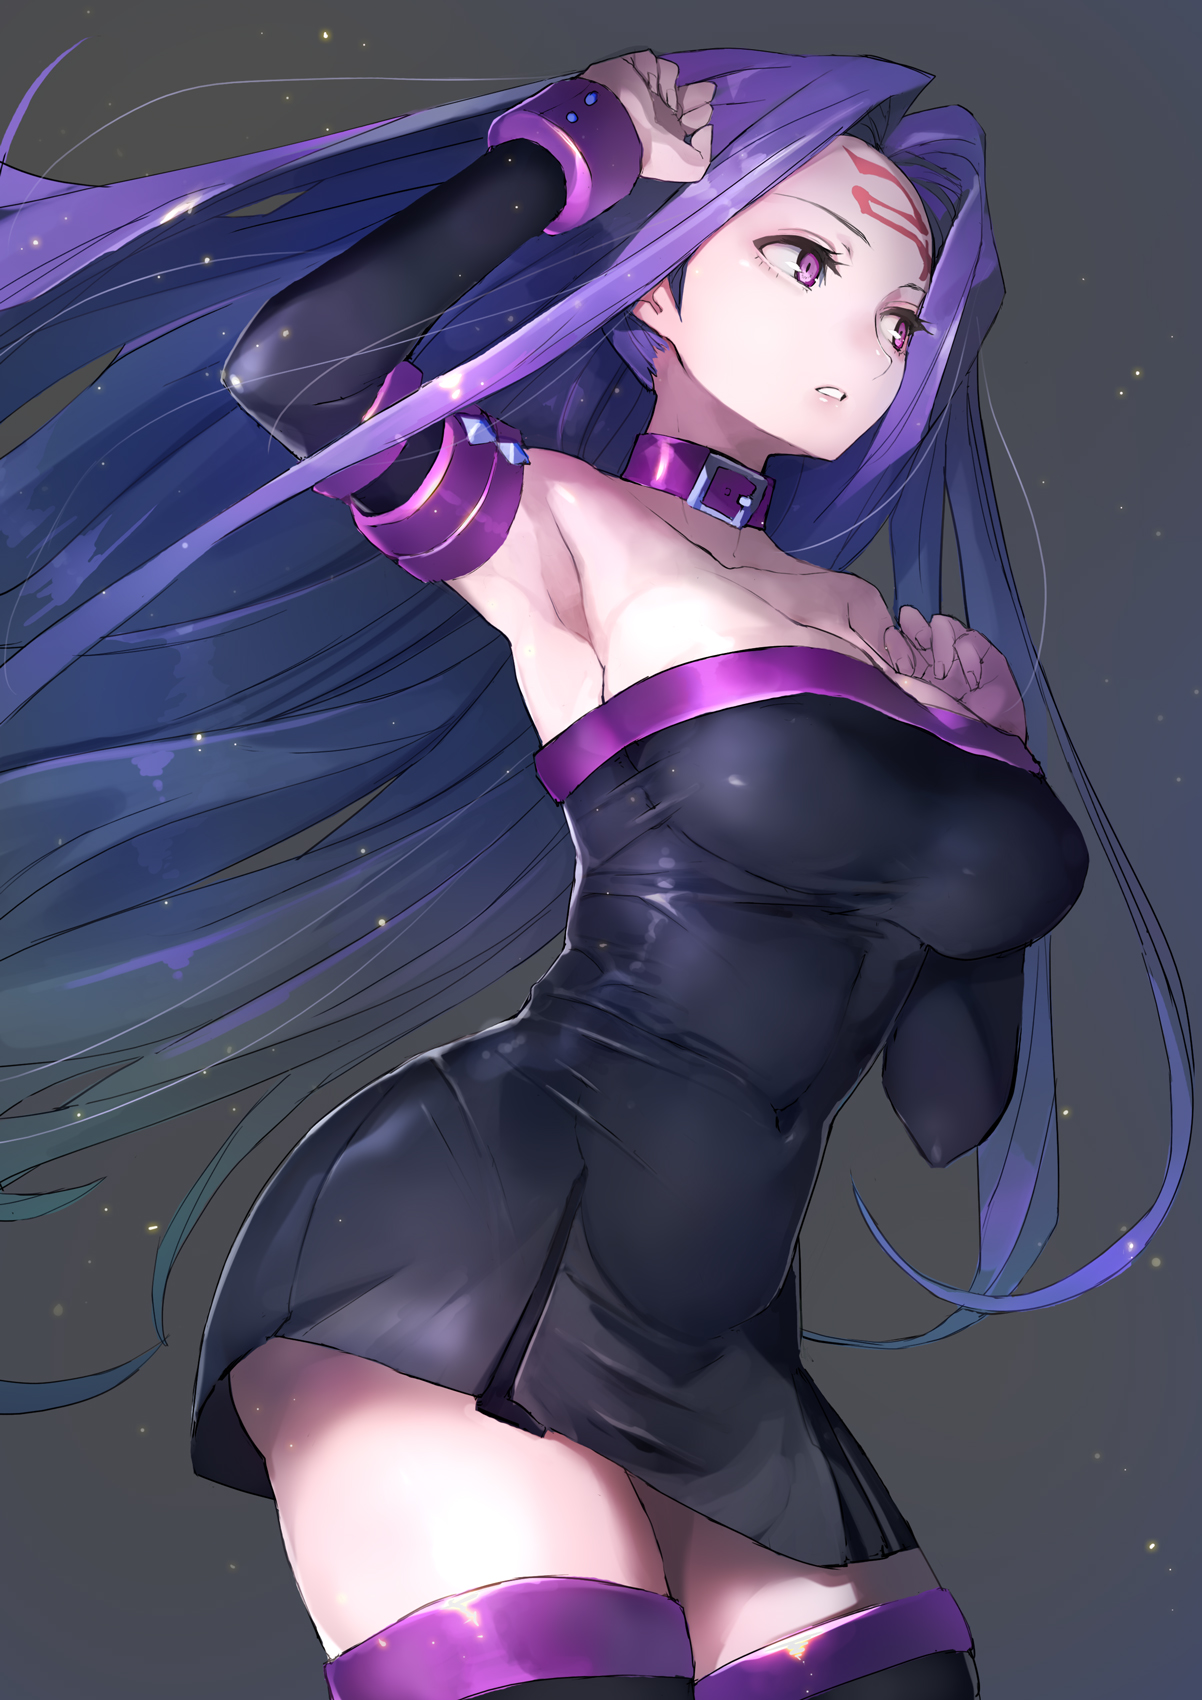 Fantasy Girl Hd Wallpaper Download Wallpaper Cleavage Dress Fate Stay Night Rider Fate